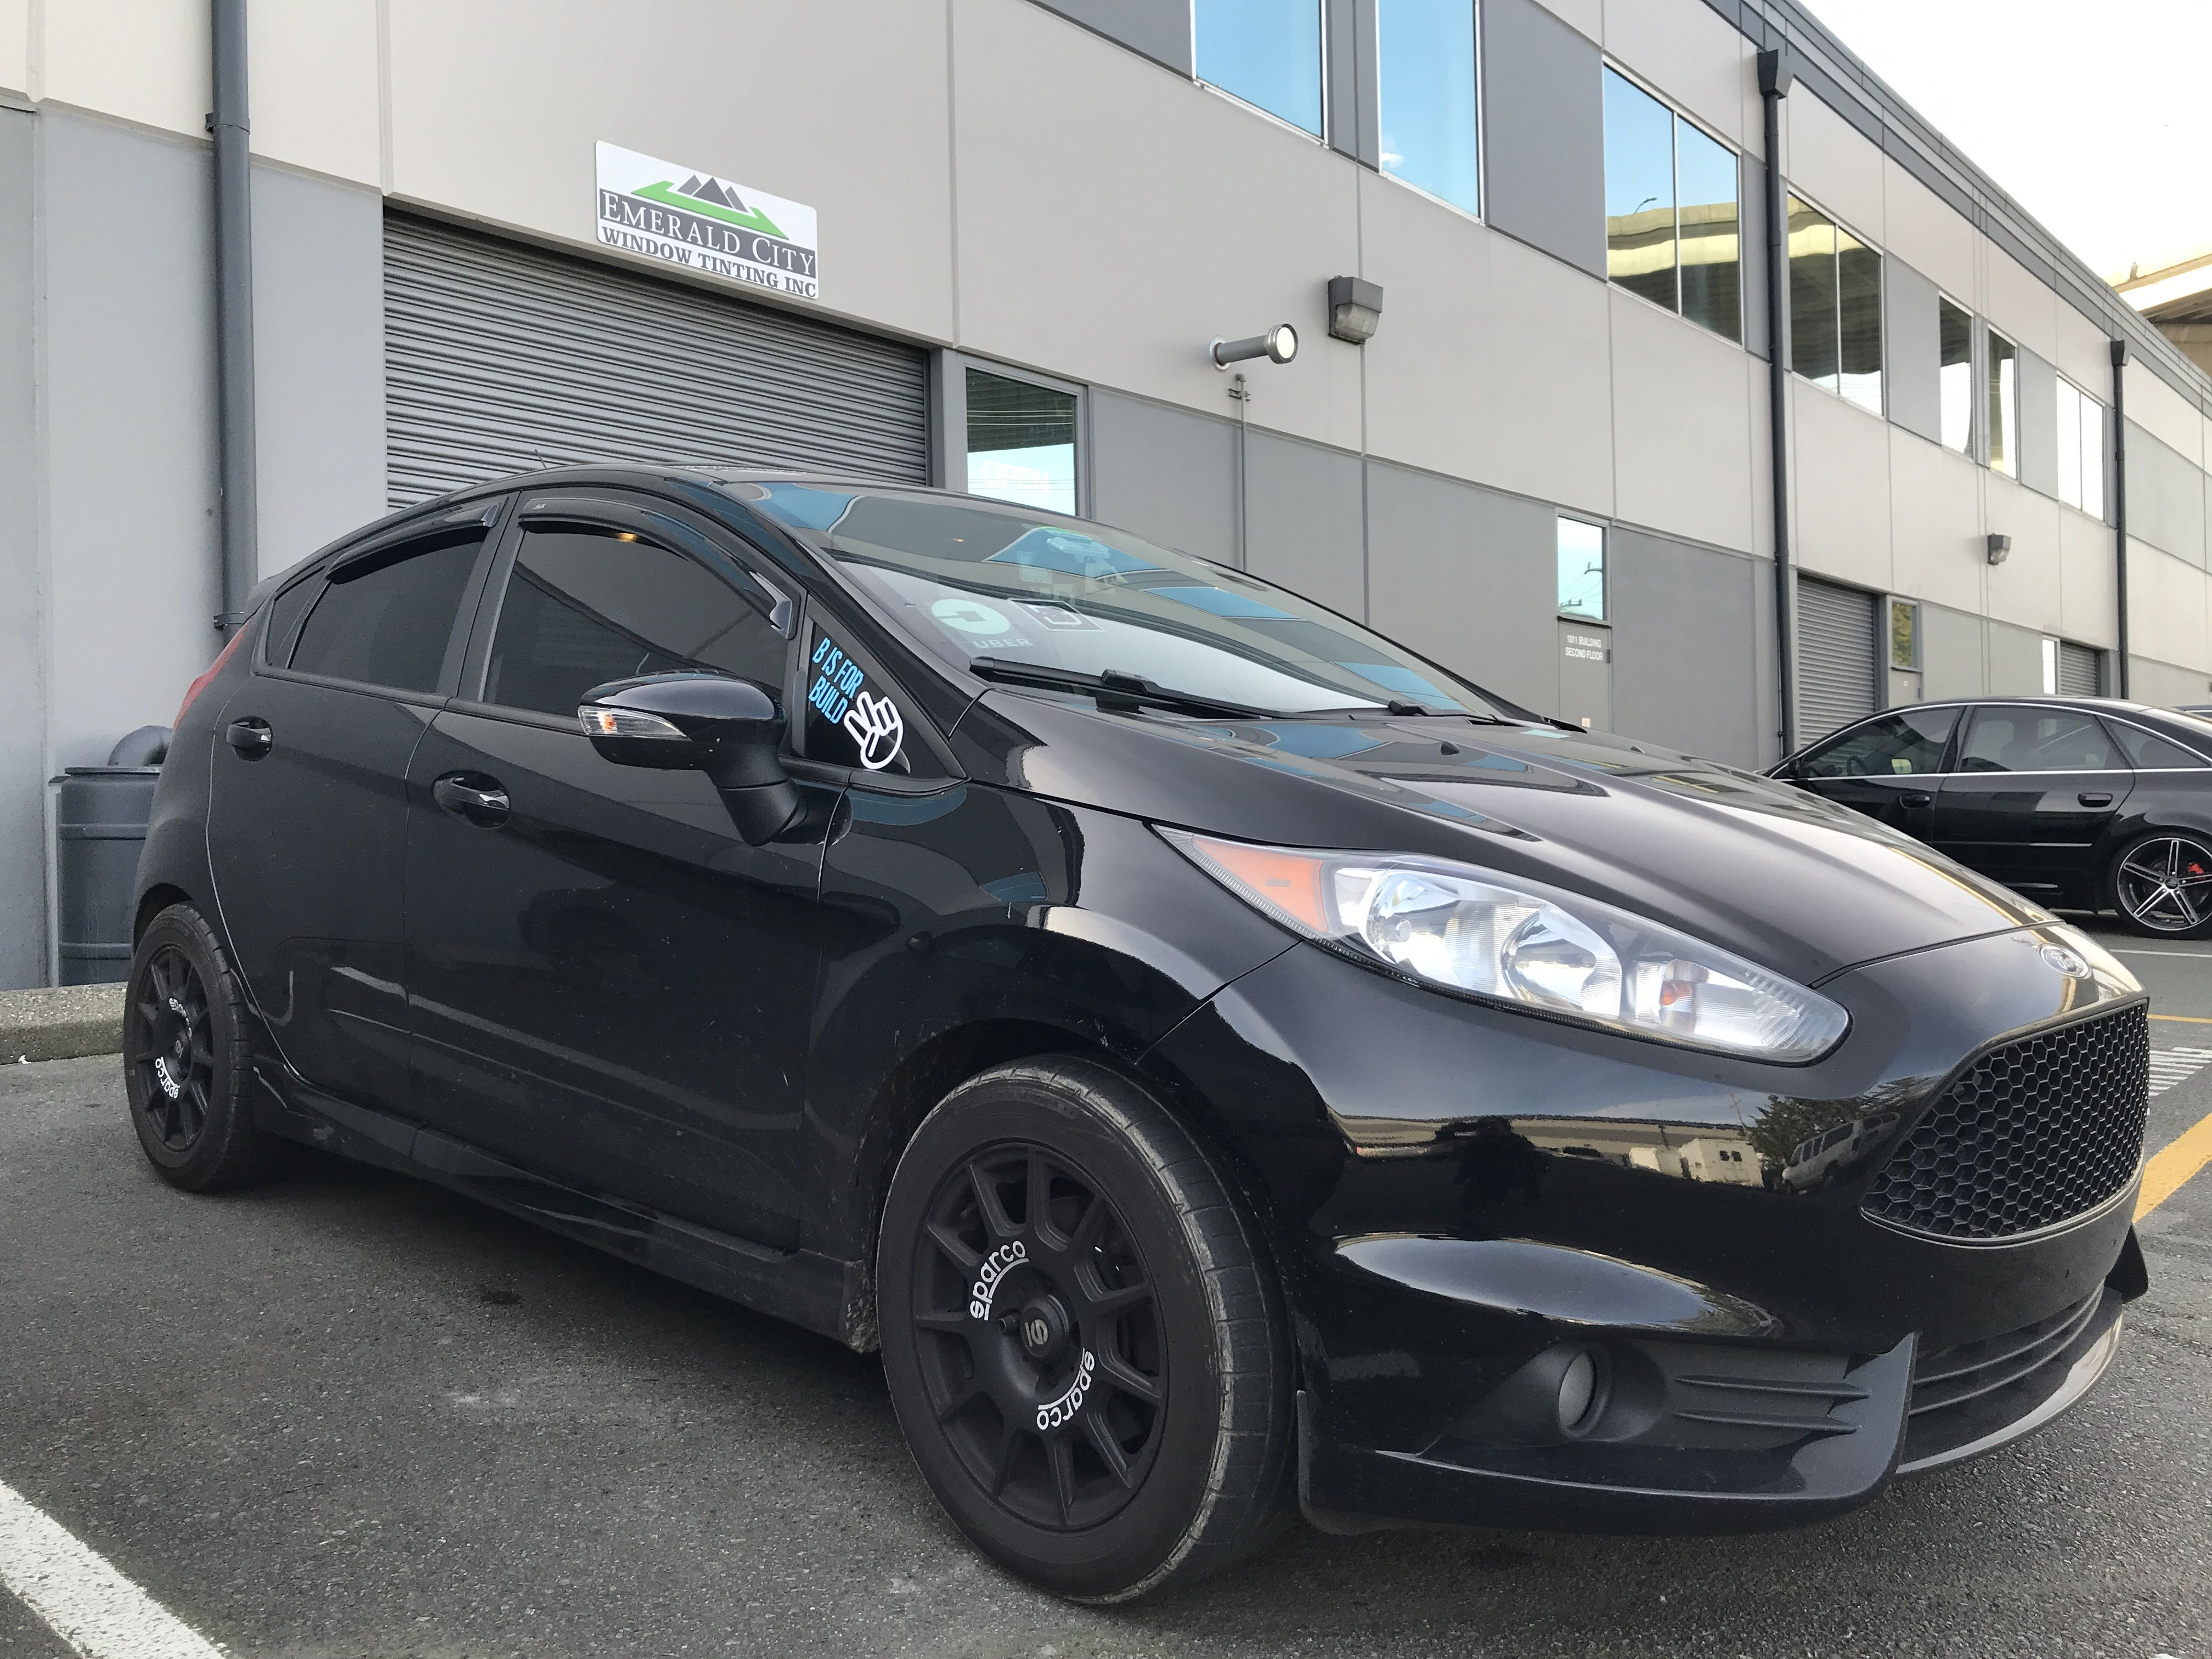 This Car Just Got A Whole Lot Cooler With Professionally Installed Window Tint Glass Film Tinted Windows Tints Car Window [ jpg ]